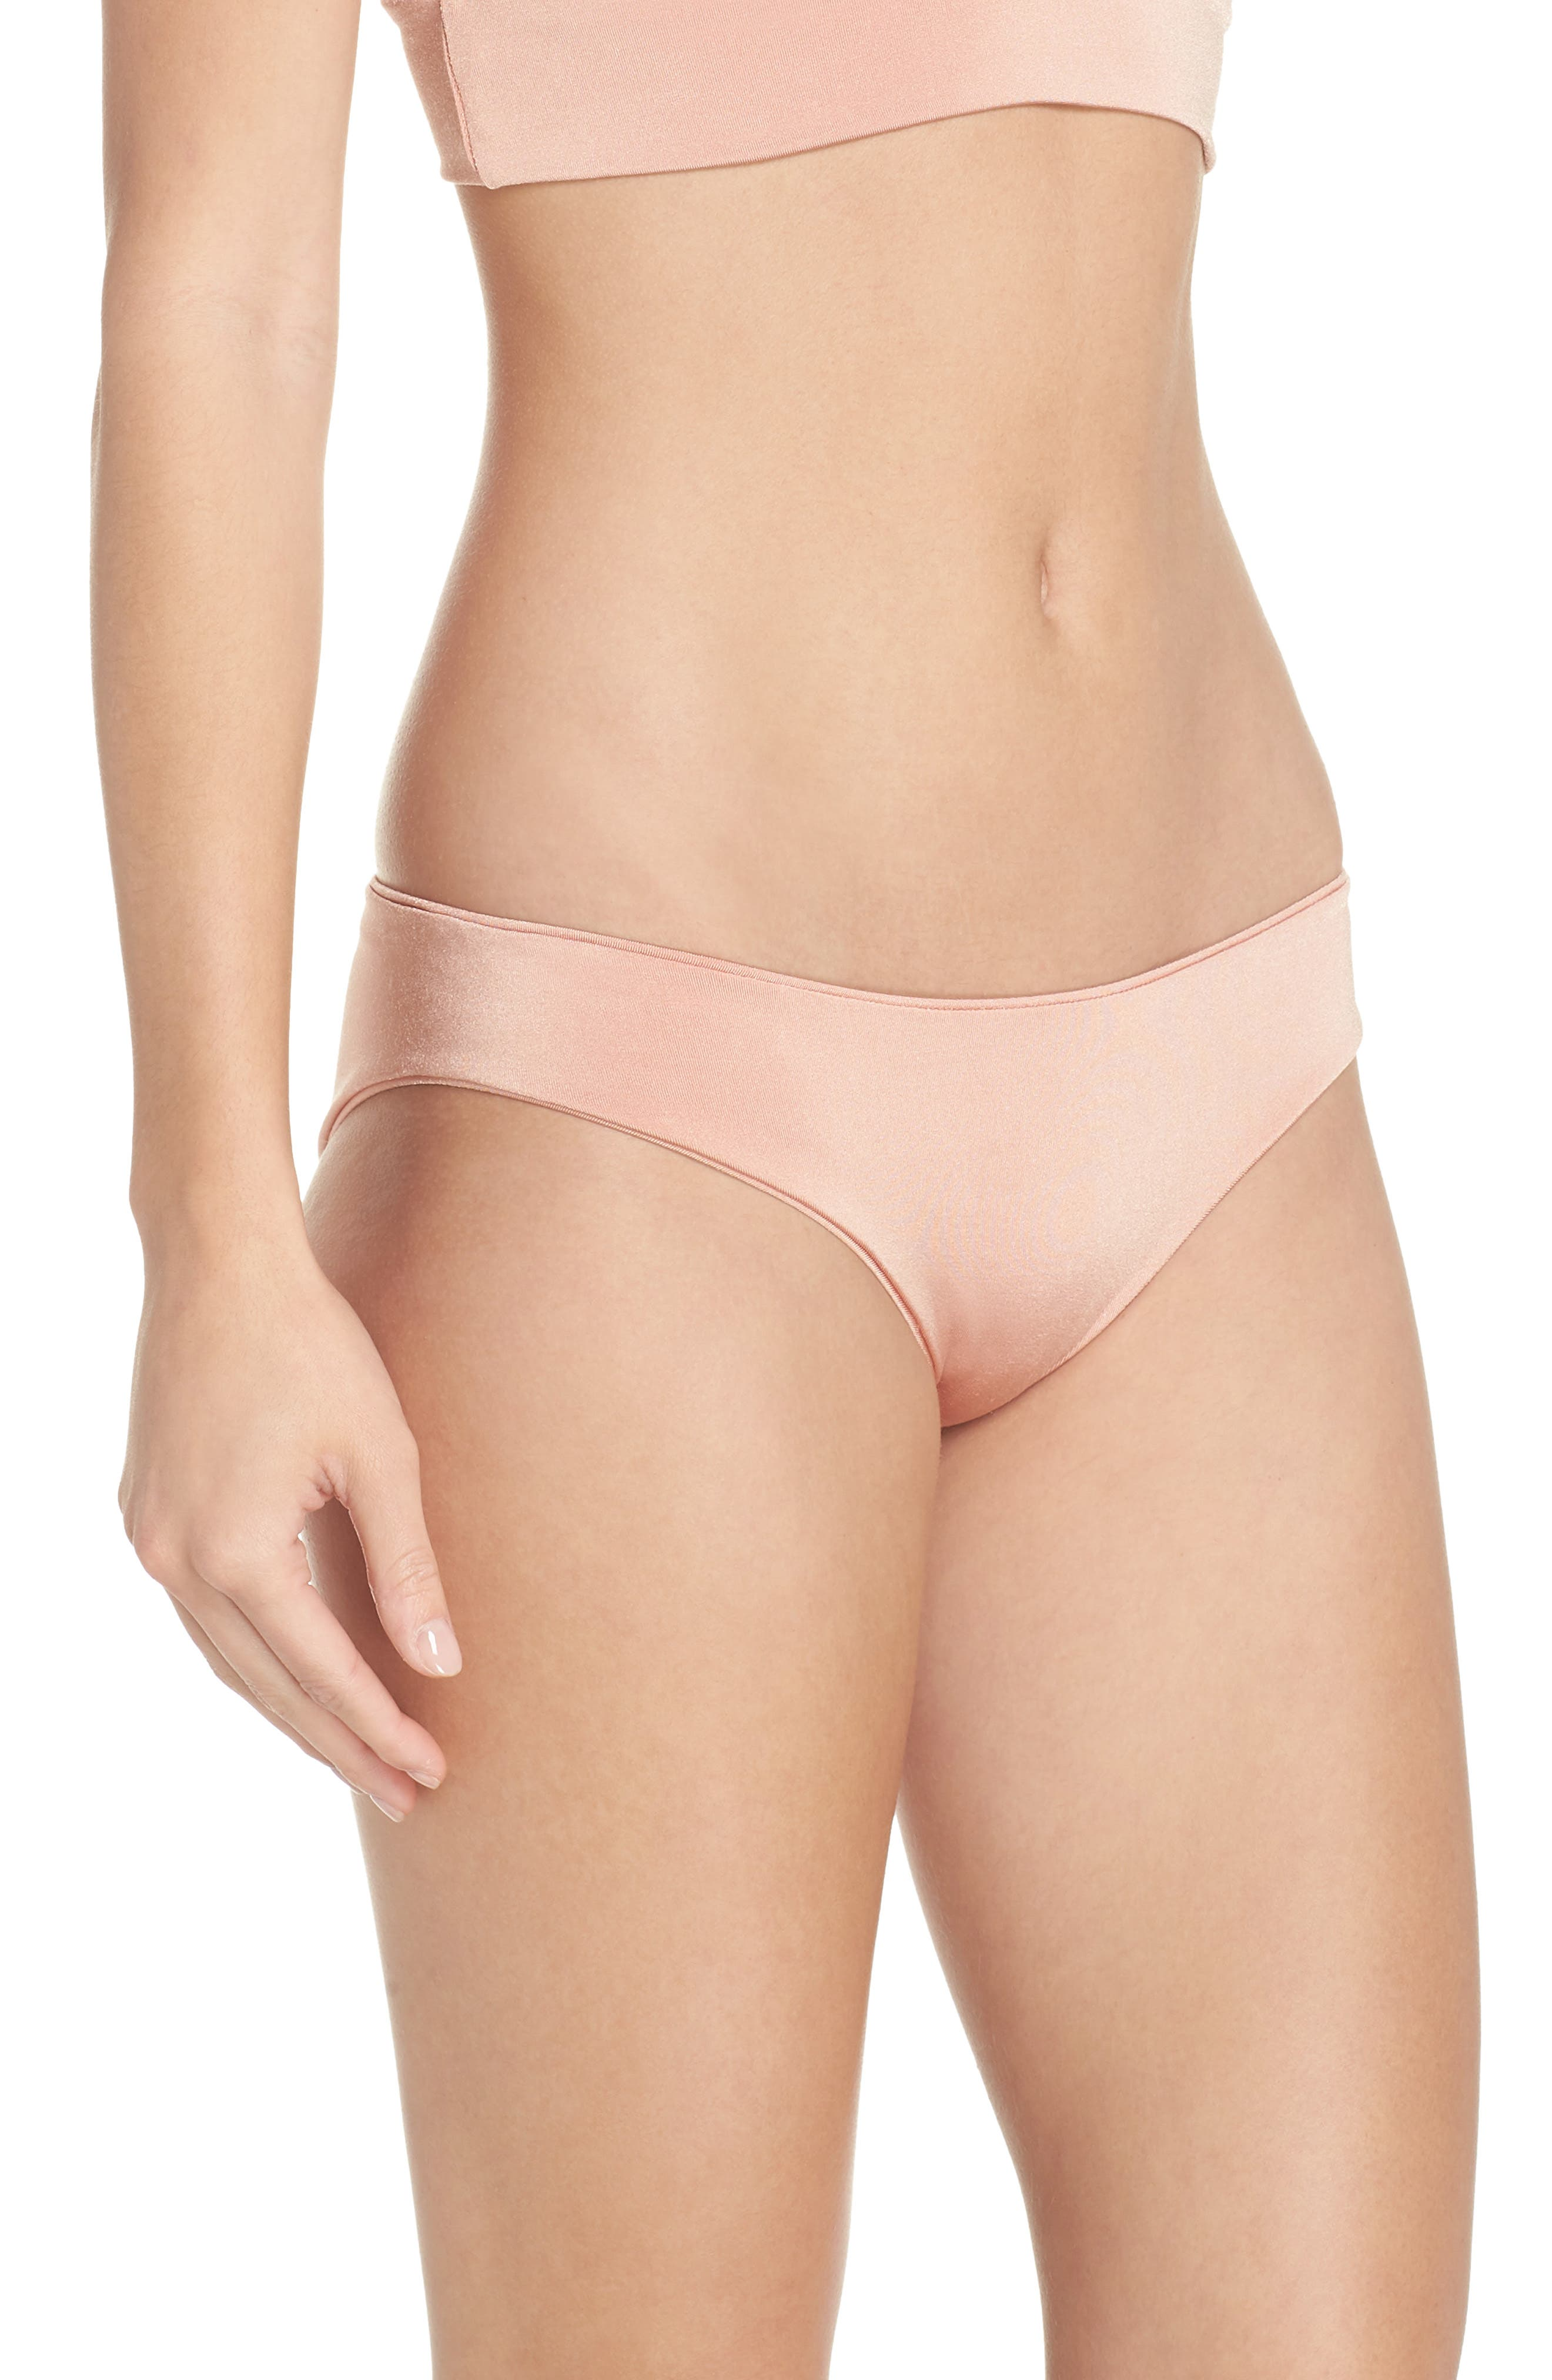 Charlie Bikini Bottoms,                             Alternate thumbnail 3, color,                             BLUSH & BASHFUL